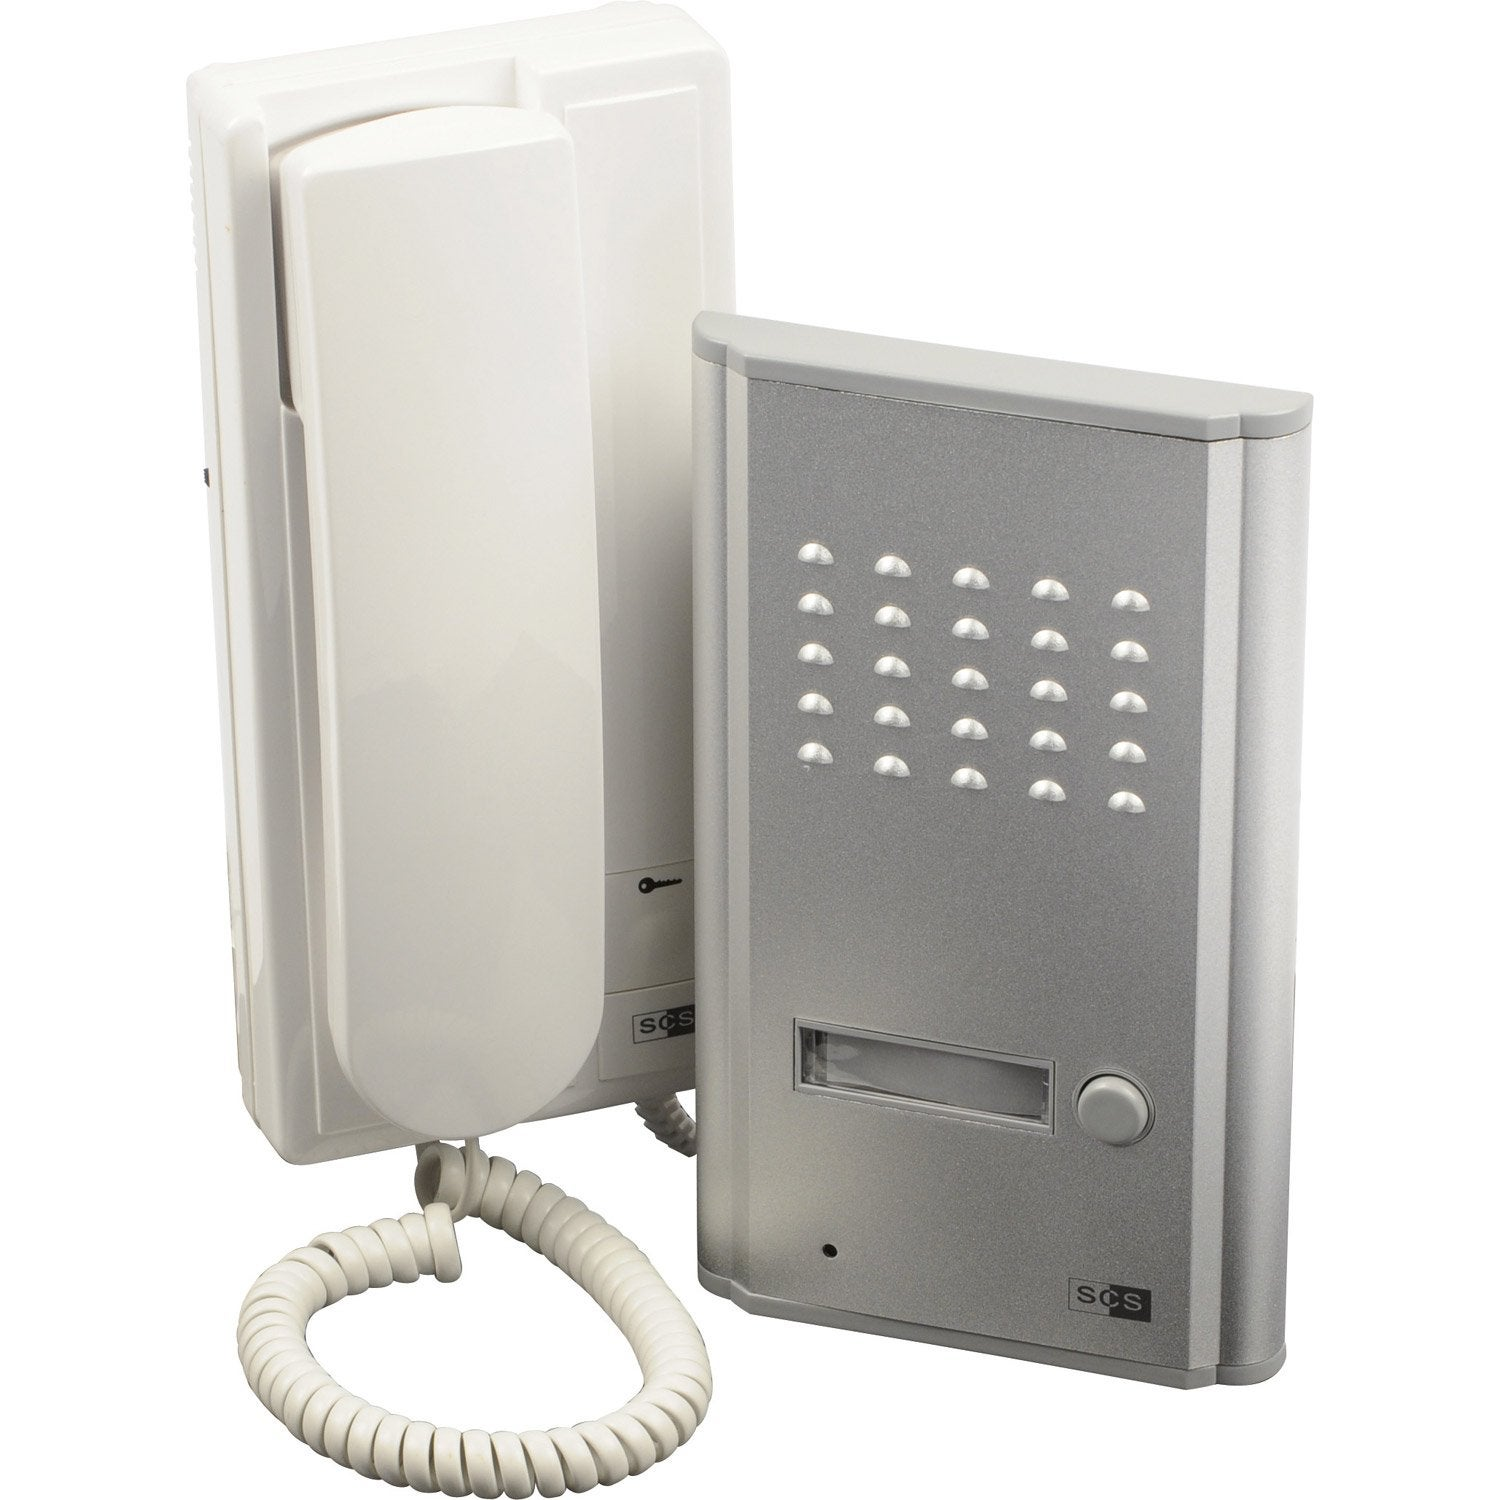 Interphone filaire scs sentinel 3208d